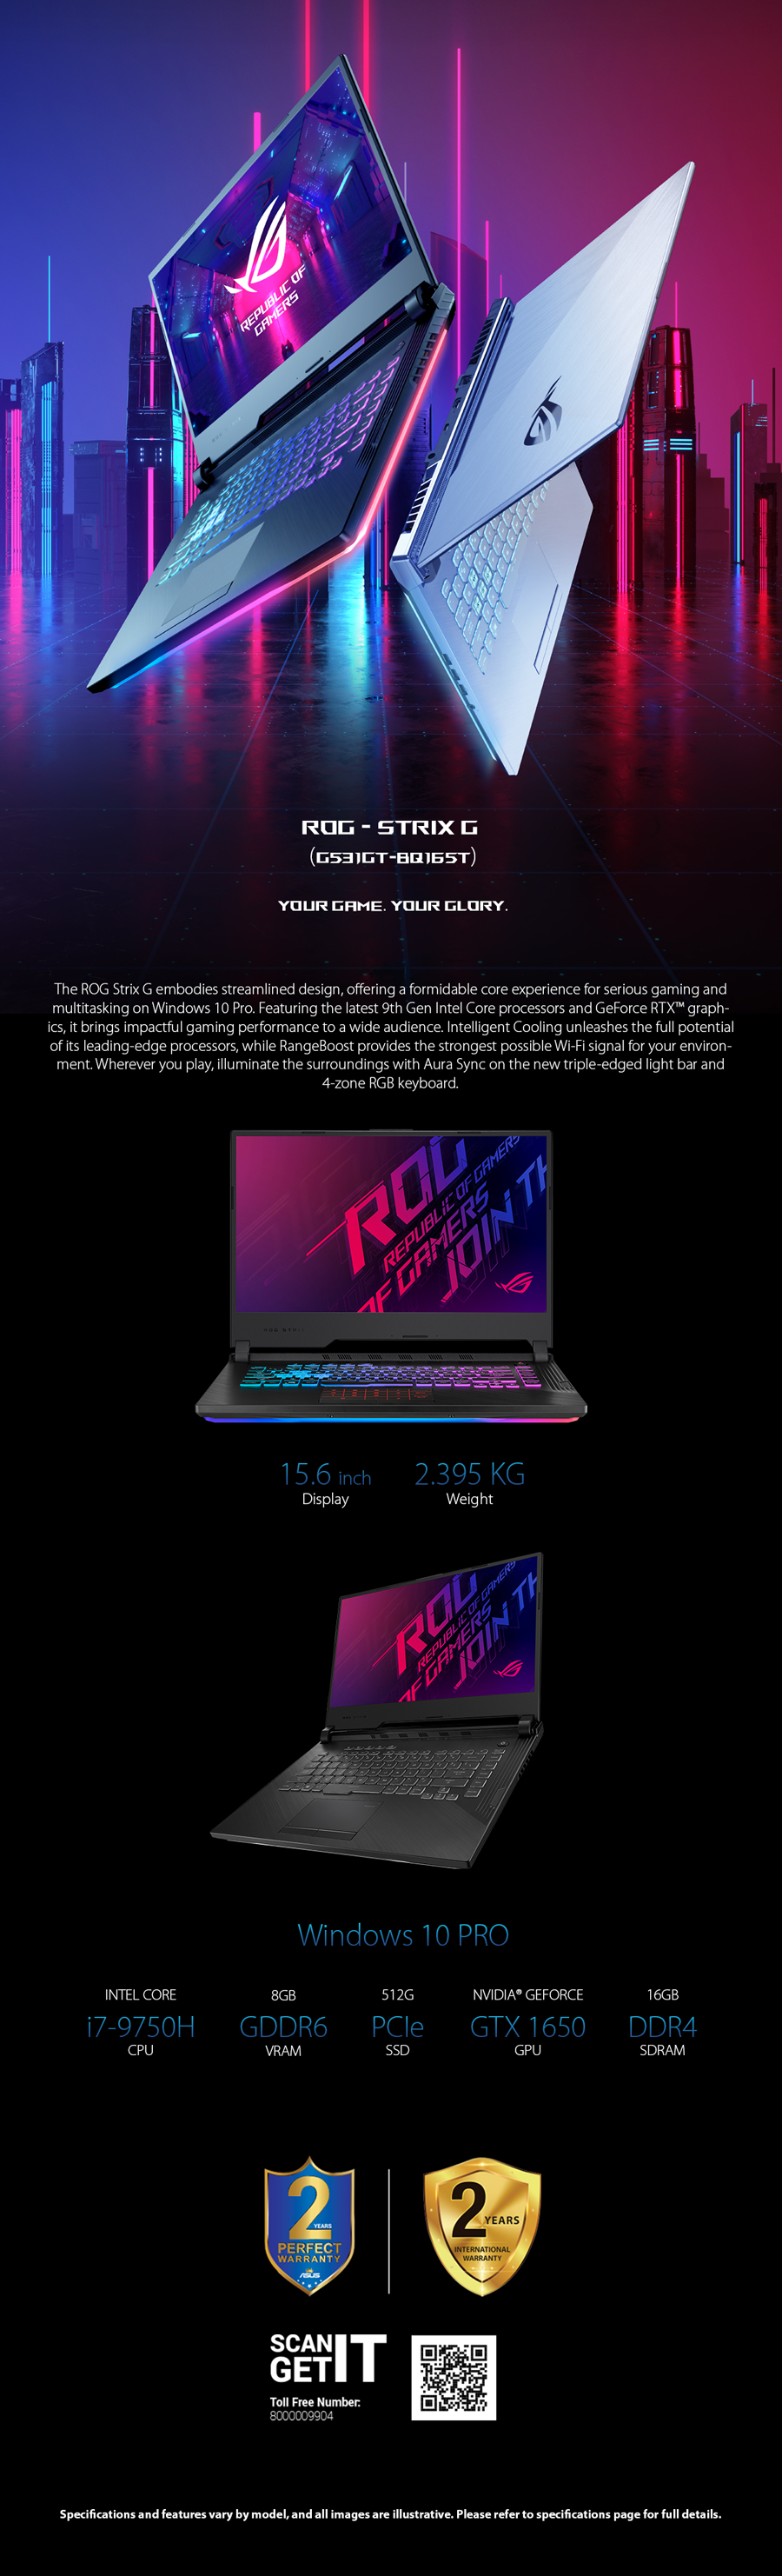 ASUS ROG strix Gaming Laptop G531GT-BQ165T Intel Ci7-9750H